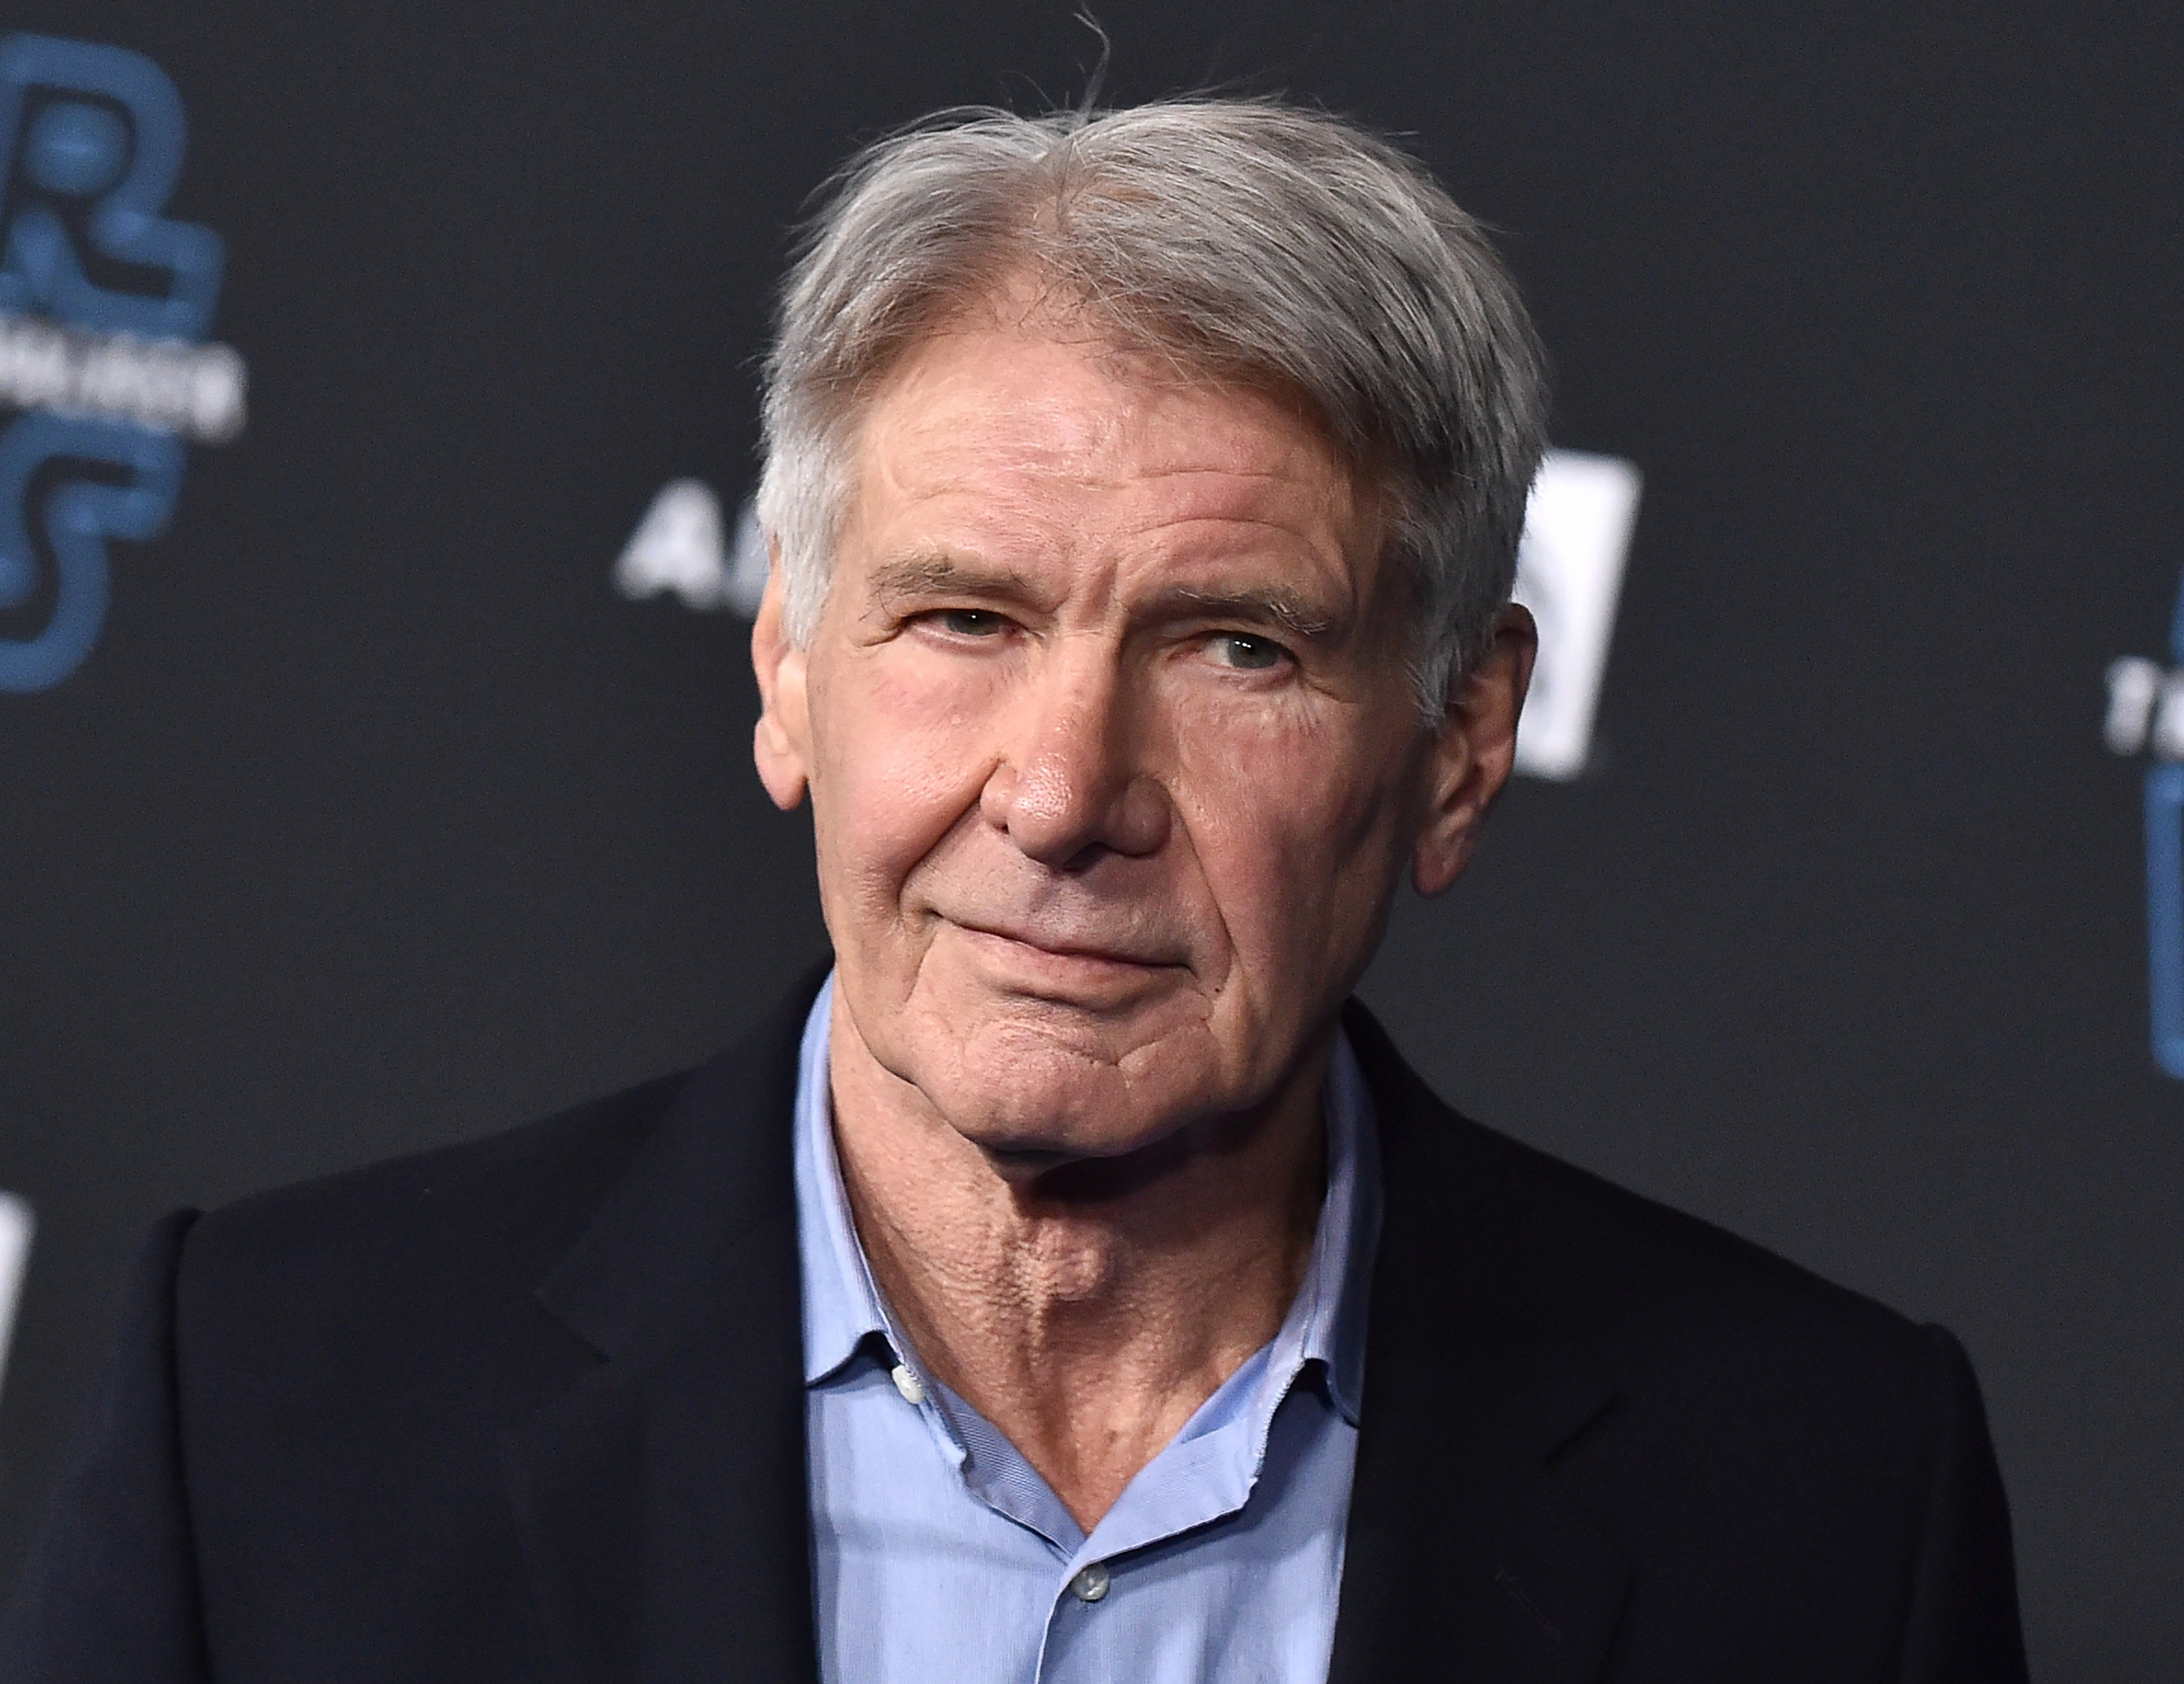 """Harrison Ford arrives for the """"Star Wars: The Rise of Skywalker"""" premiere on December 16, 2019 in Hollywood, California   Photo: Shutterstock"""